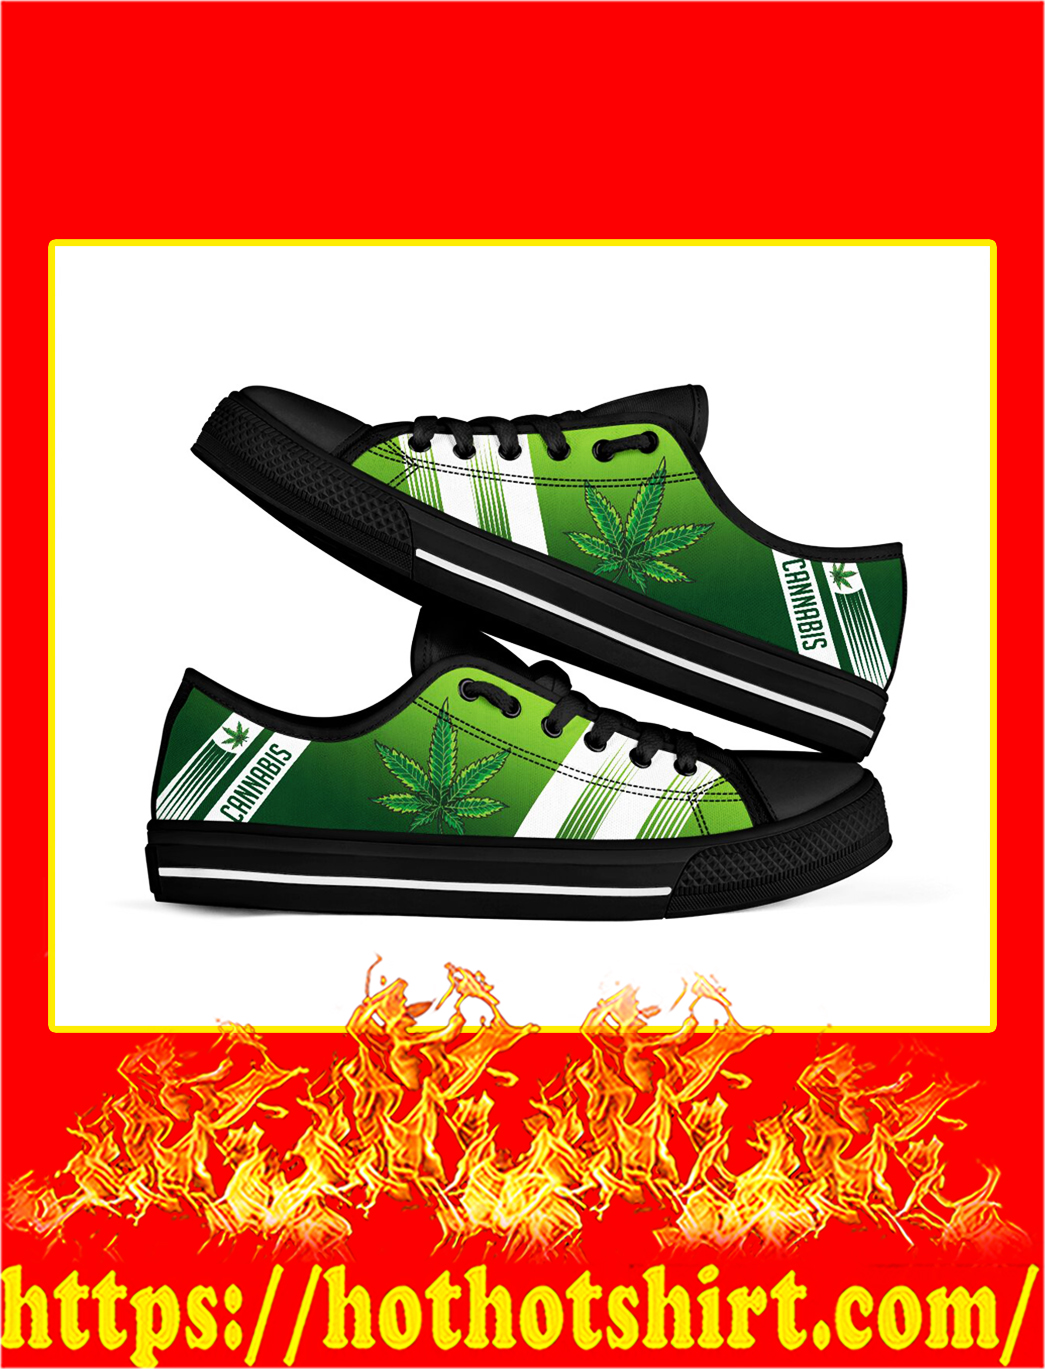 Cannabis weed low top shoes- pic 3